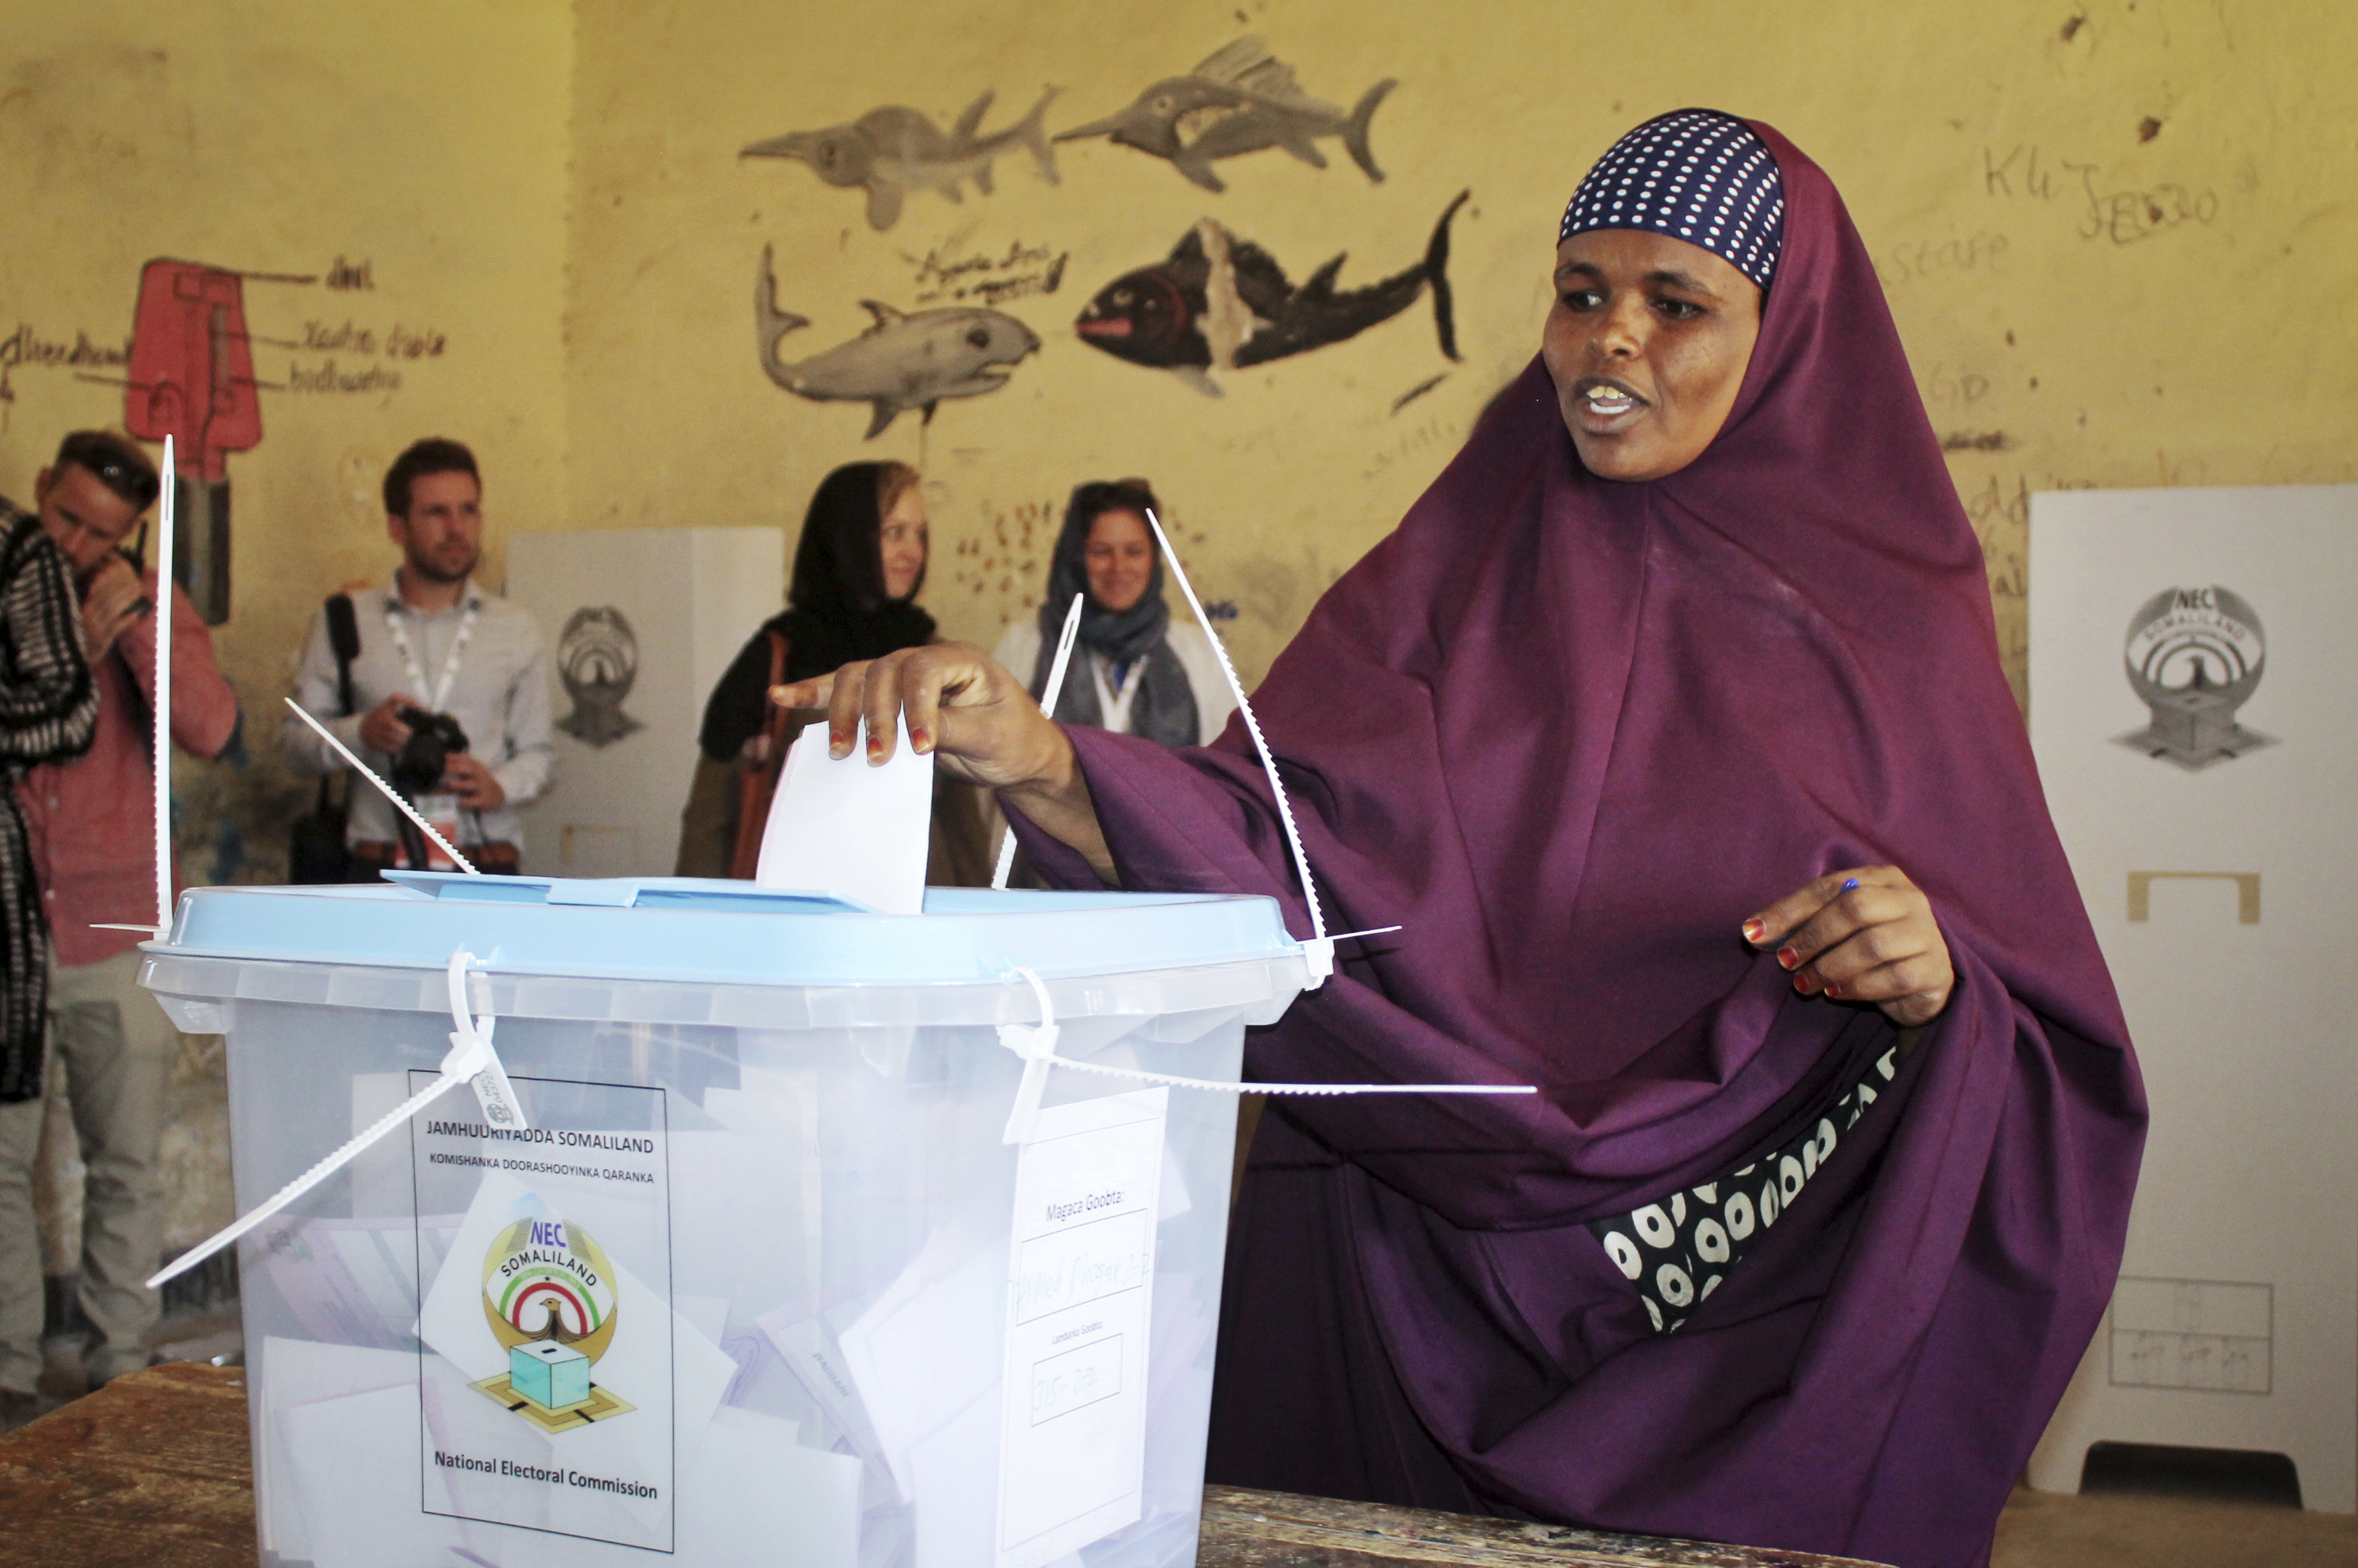 A woman casts her vote in the presidential election in Hargeisa, in the semi-autonomous region of Somaliland, Nov. 13, 2017.